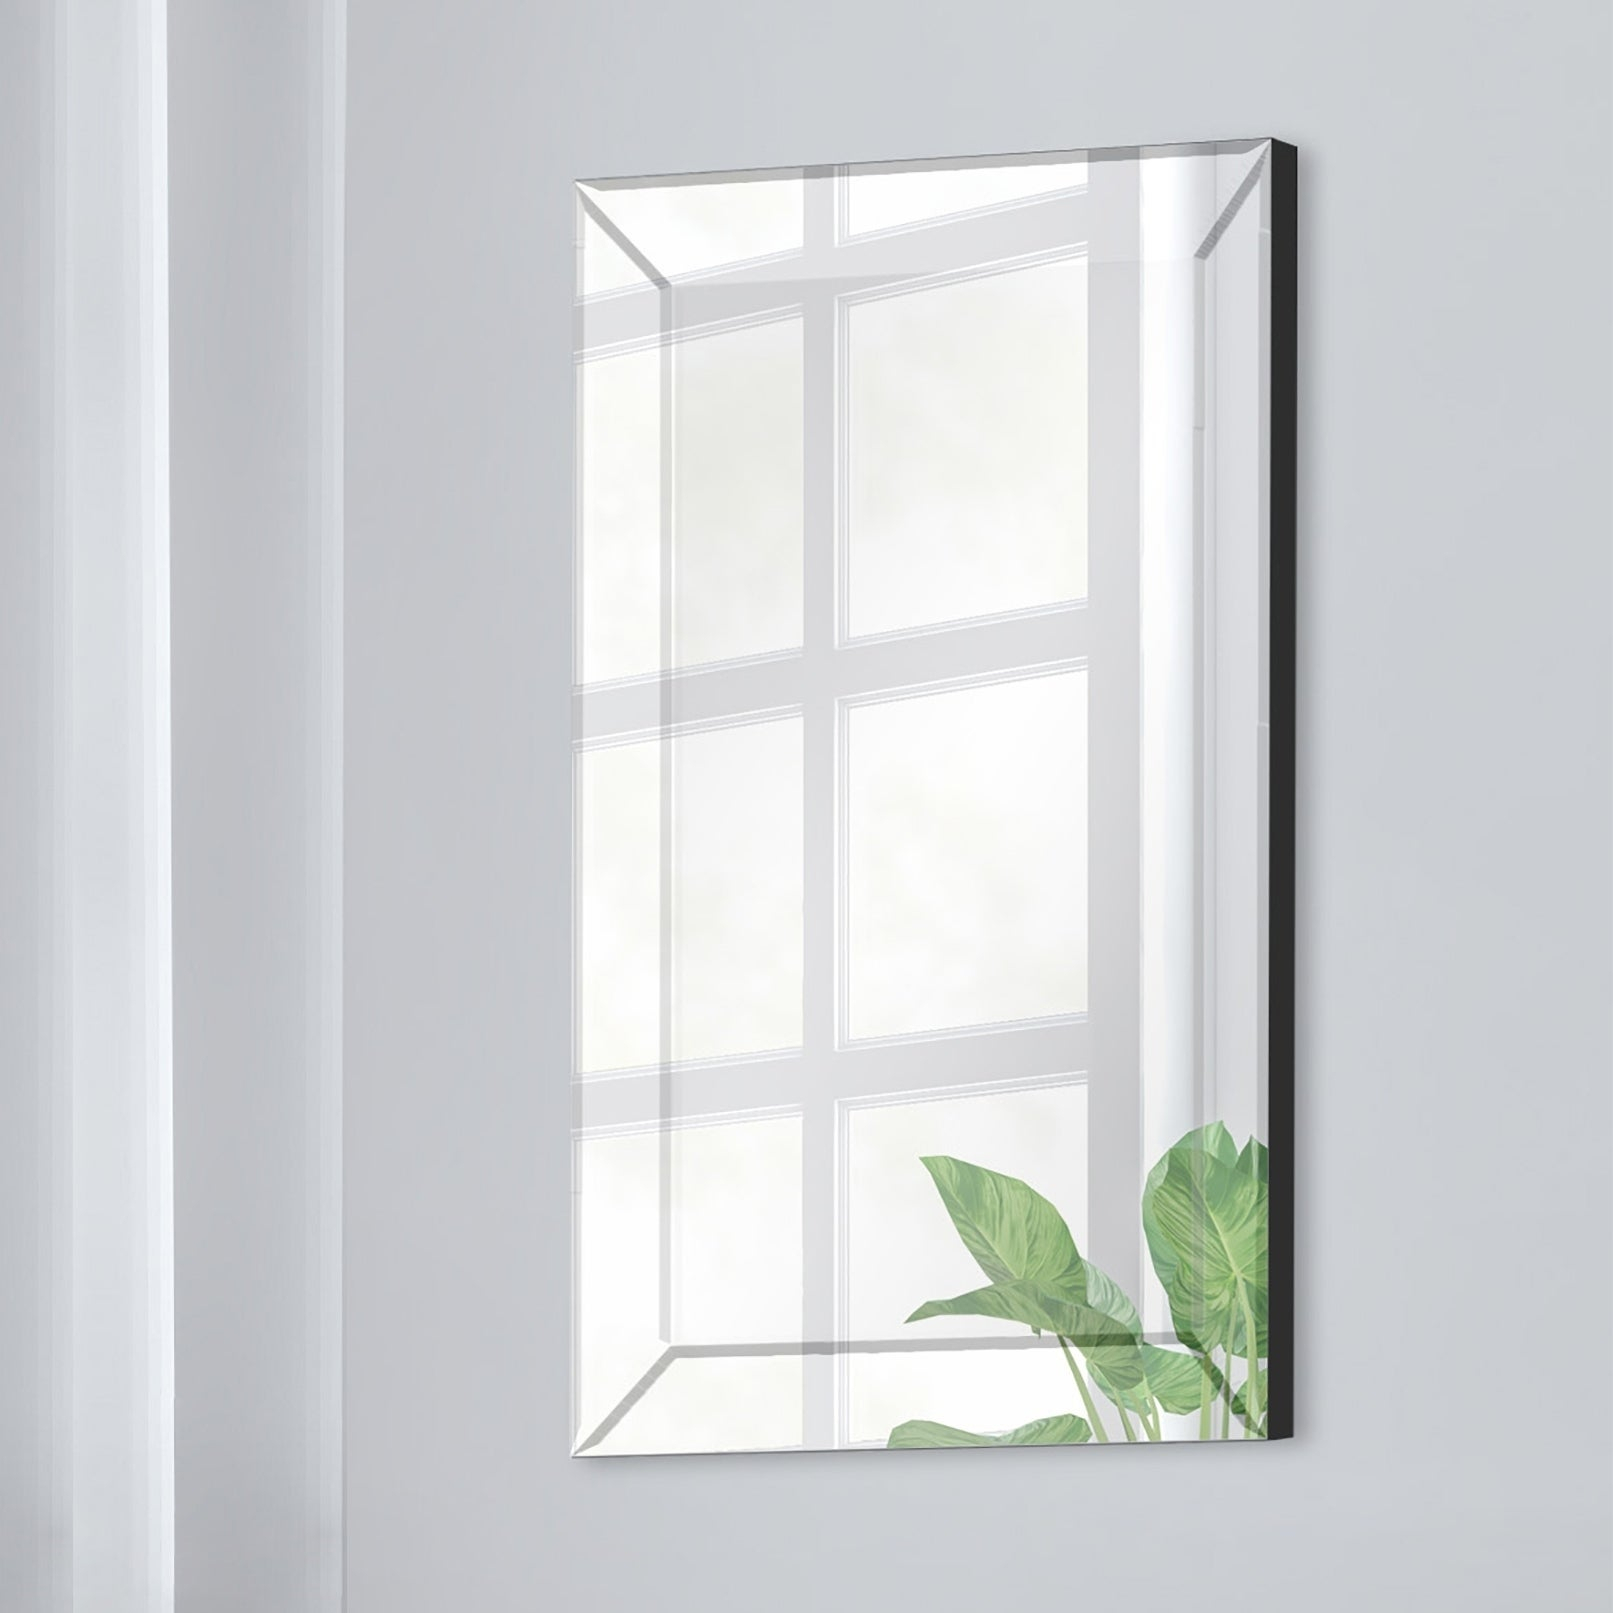 Gallery Solutions Mirror Framed Beveled Wall Accent Mirror – Silver Inside Glam Beveled Accent Mirrors (Image 2 of 20)